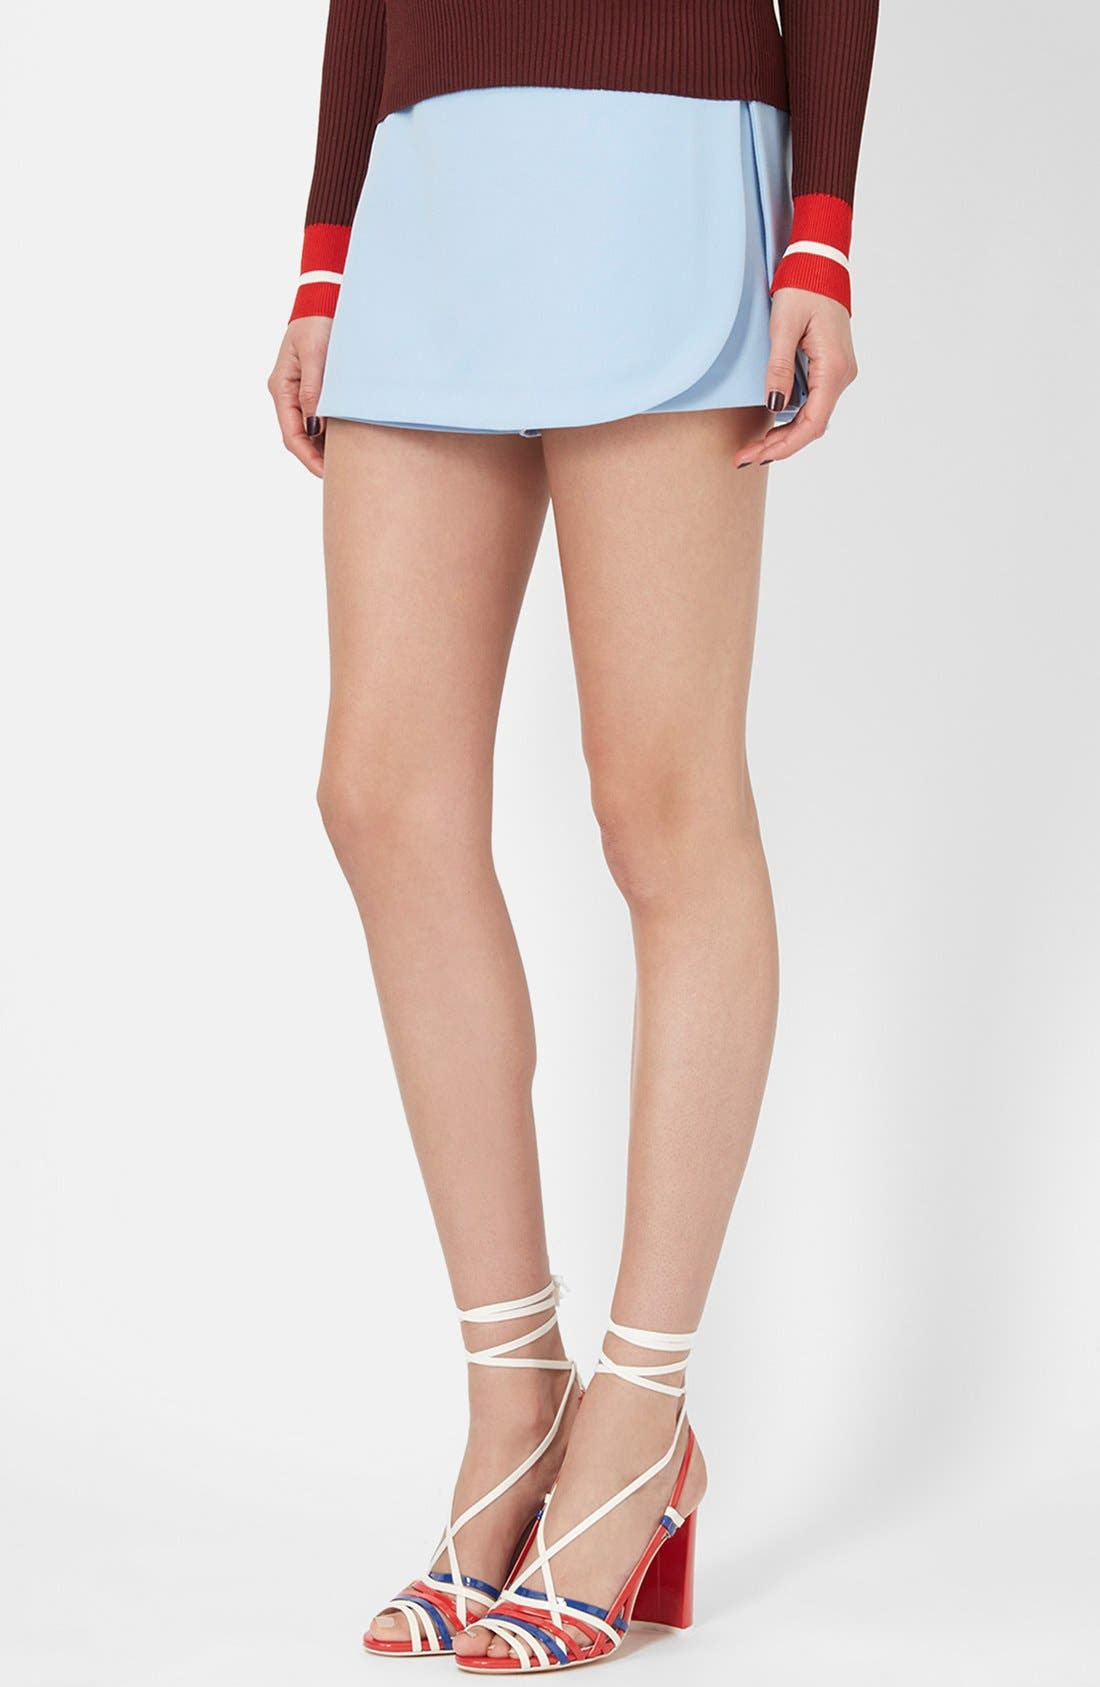 TOPSHOP UNIQUE, Tailored Overlay Skort, Main thumbnail 1, color, 400